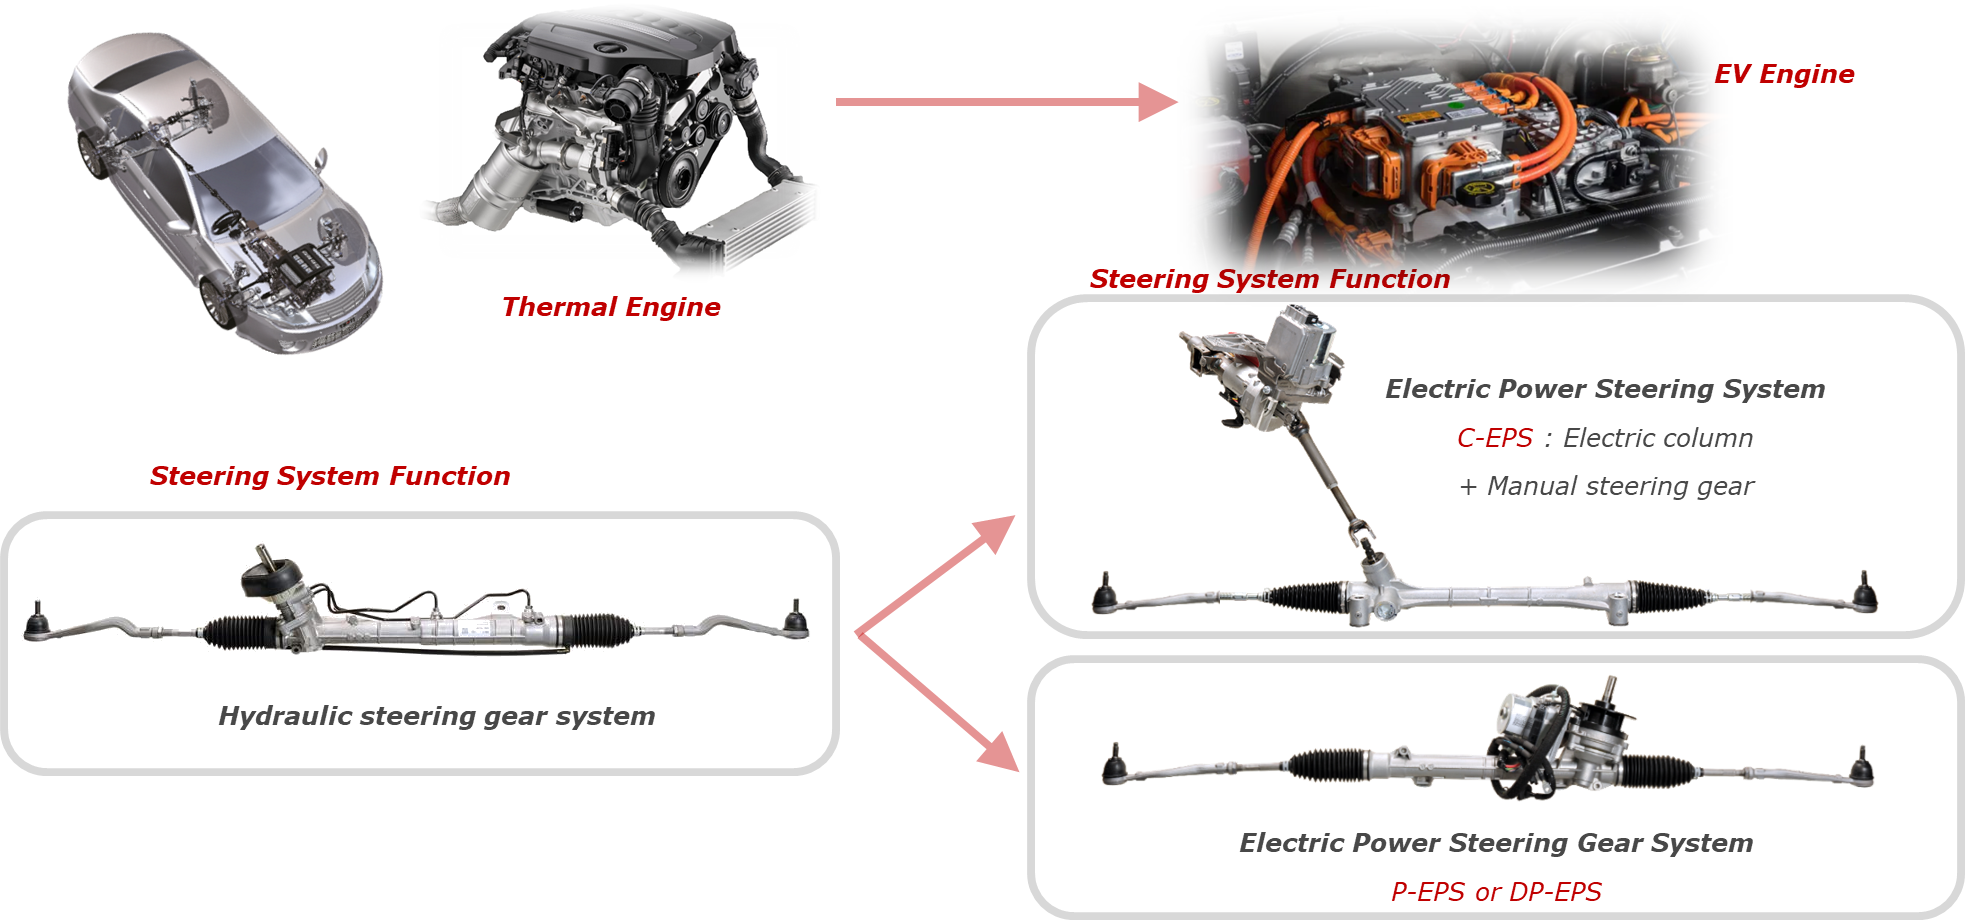 Steering Systems New Vehicles and Conversions